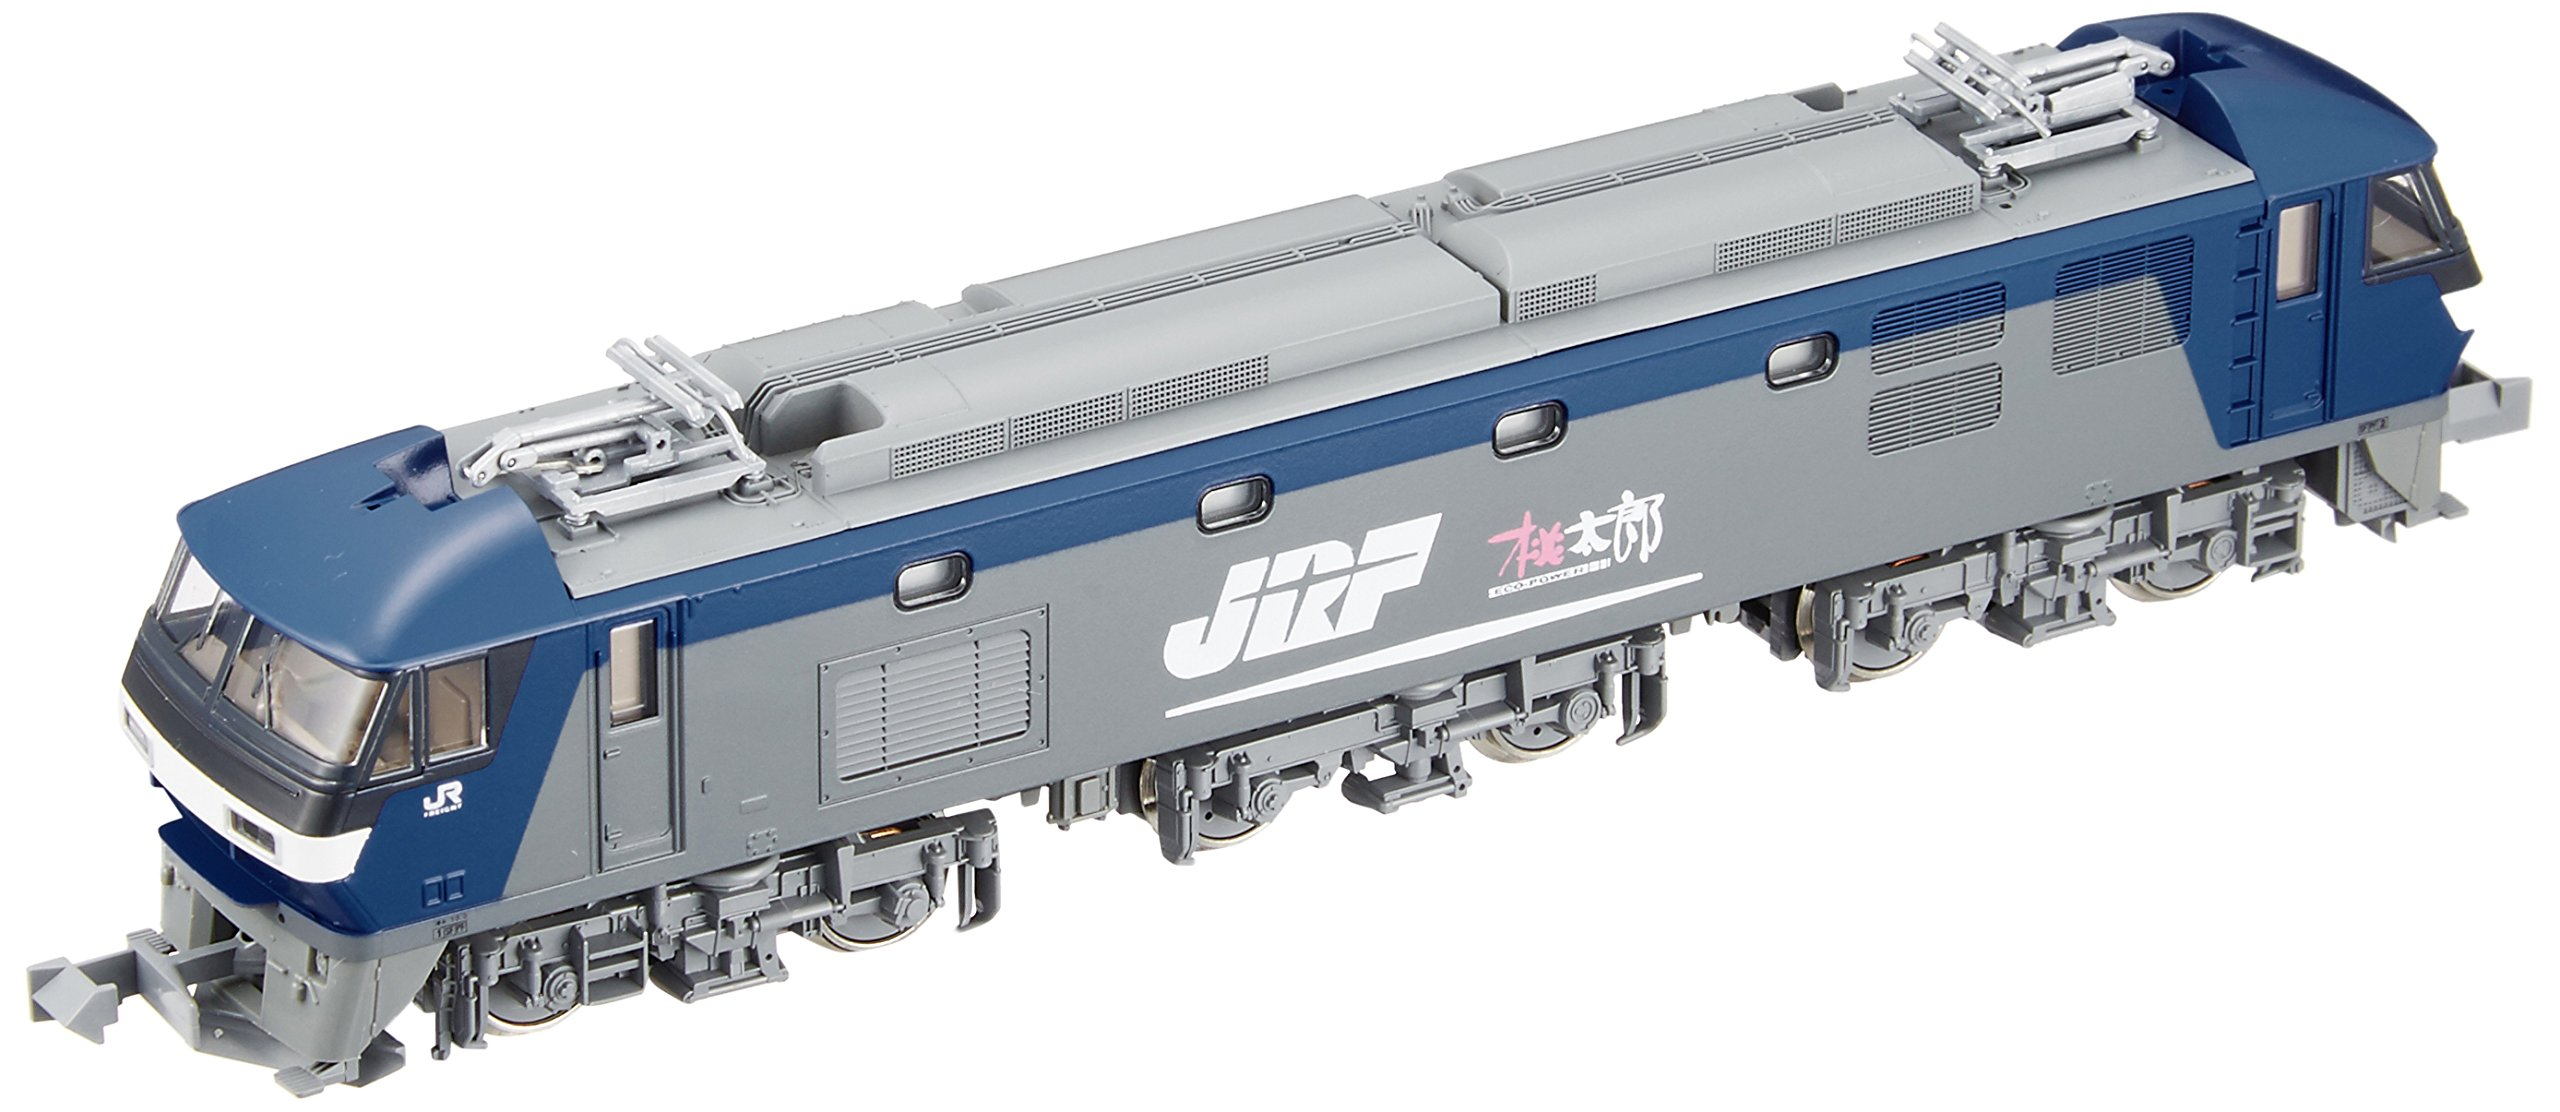 Kato 3034-3 Ef210-100 Electric Locomotive With Single-Armed Pantograph